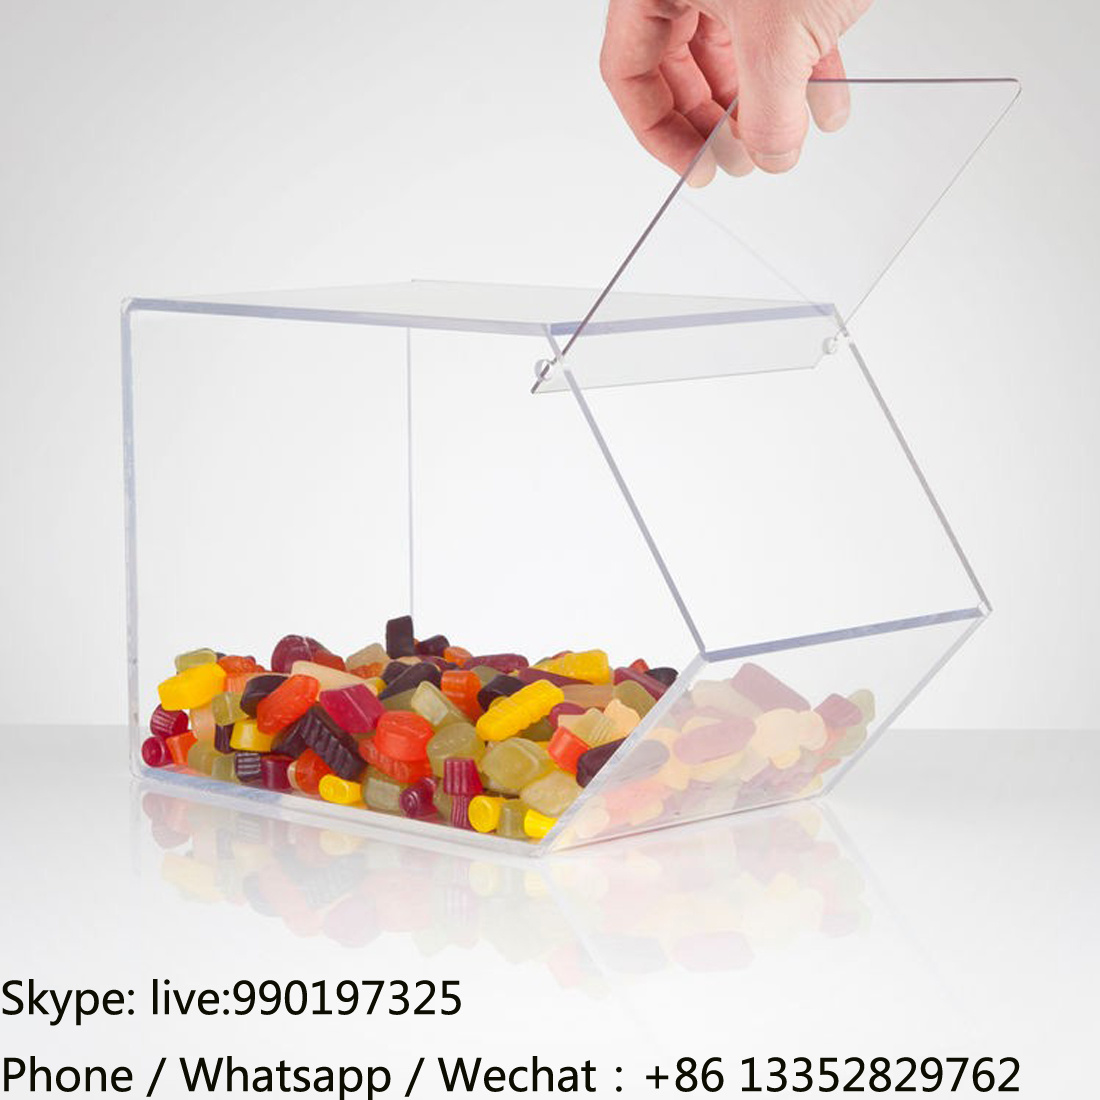 Virgin Clear Acrylic Candy Container with Lid